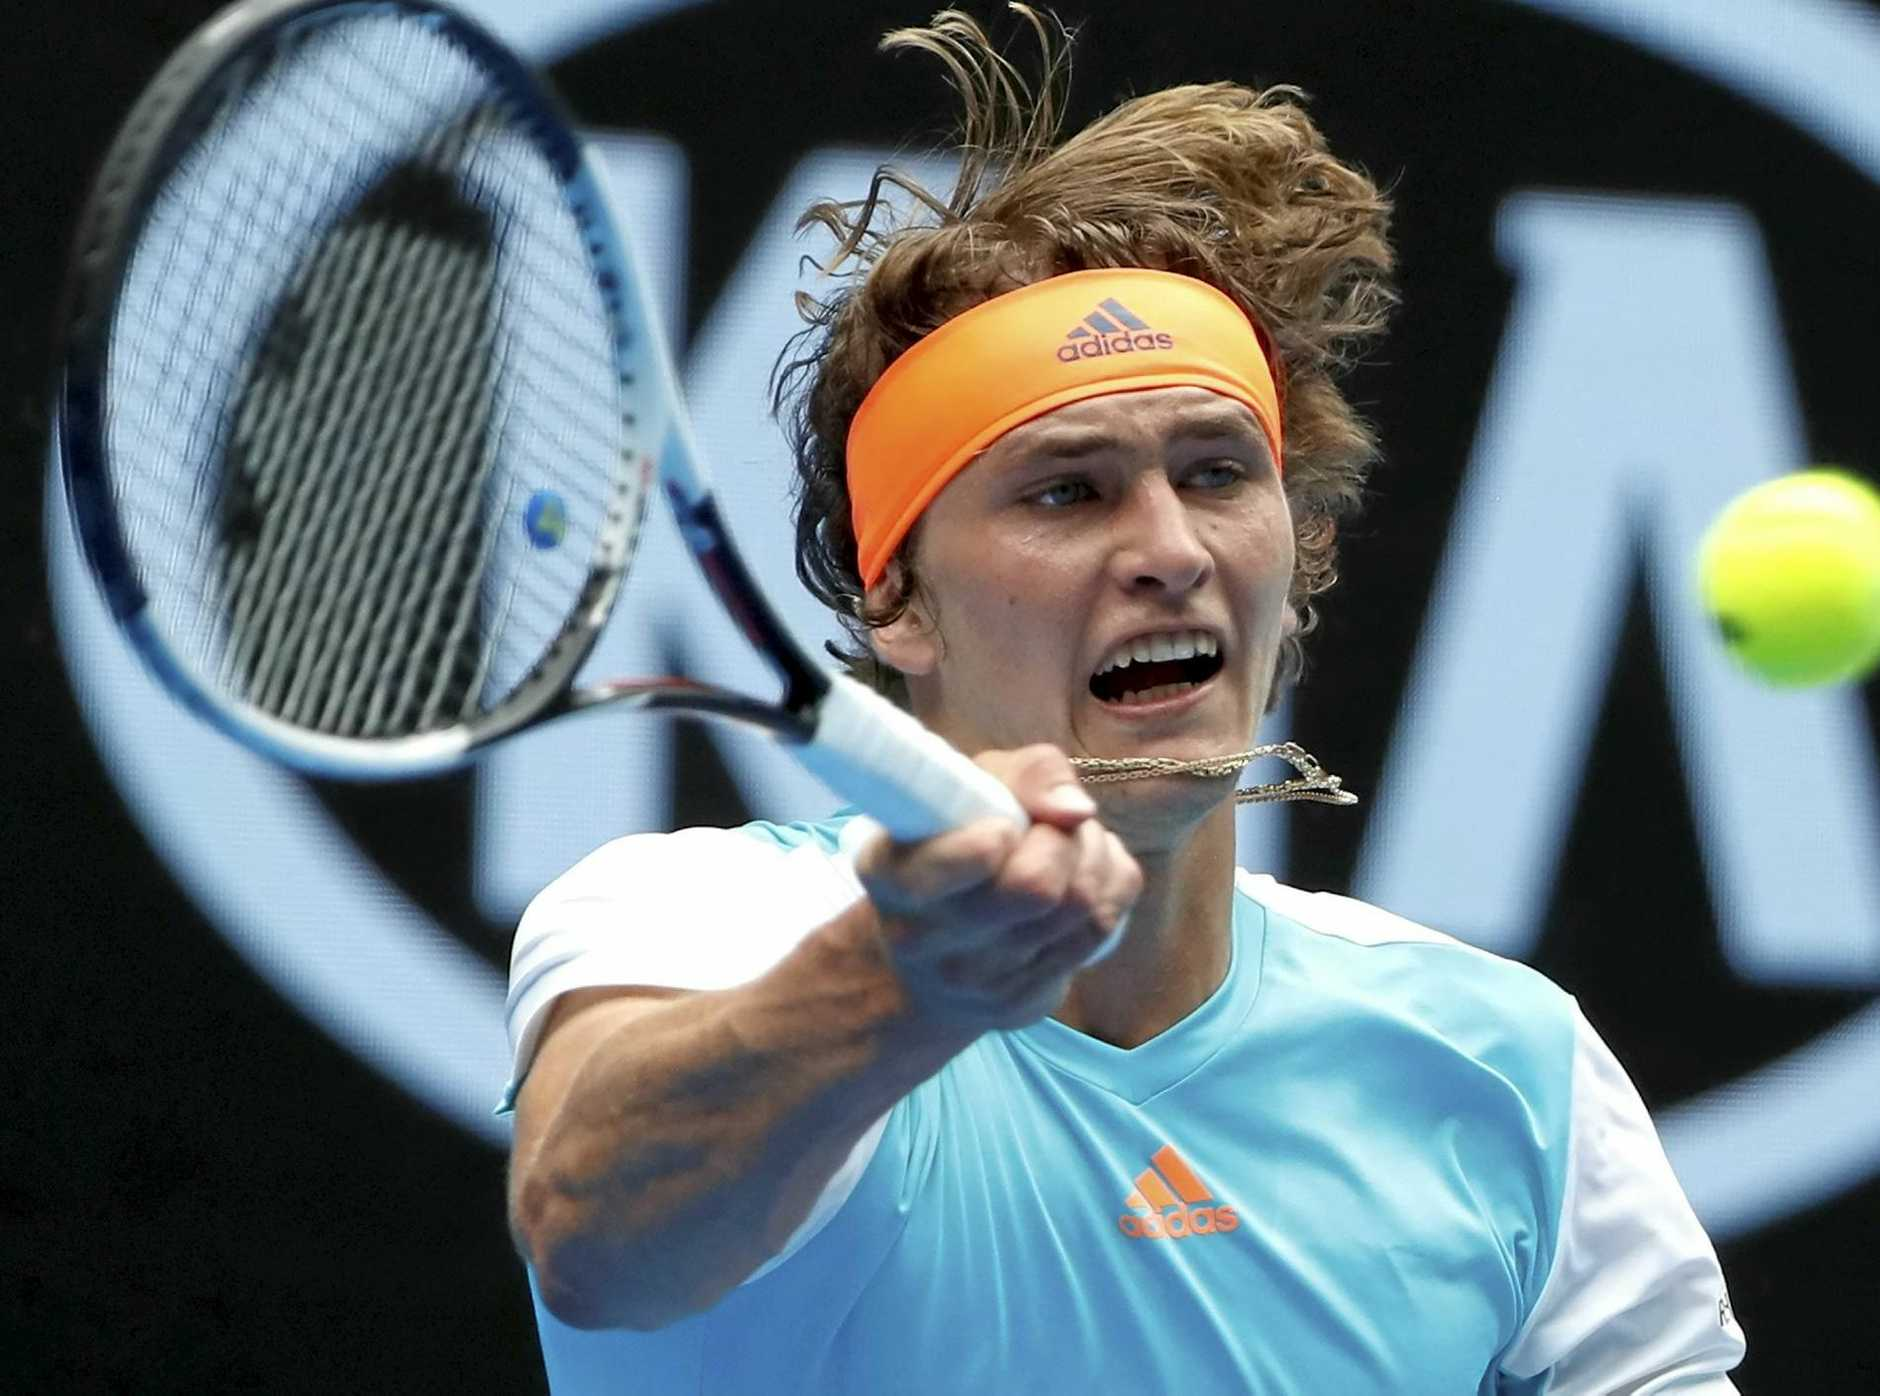 Germany's Alexander Zverev makes a forehand return to Robin Haase of the Netherlands.